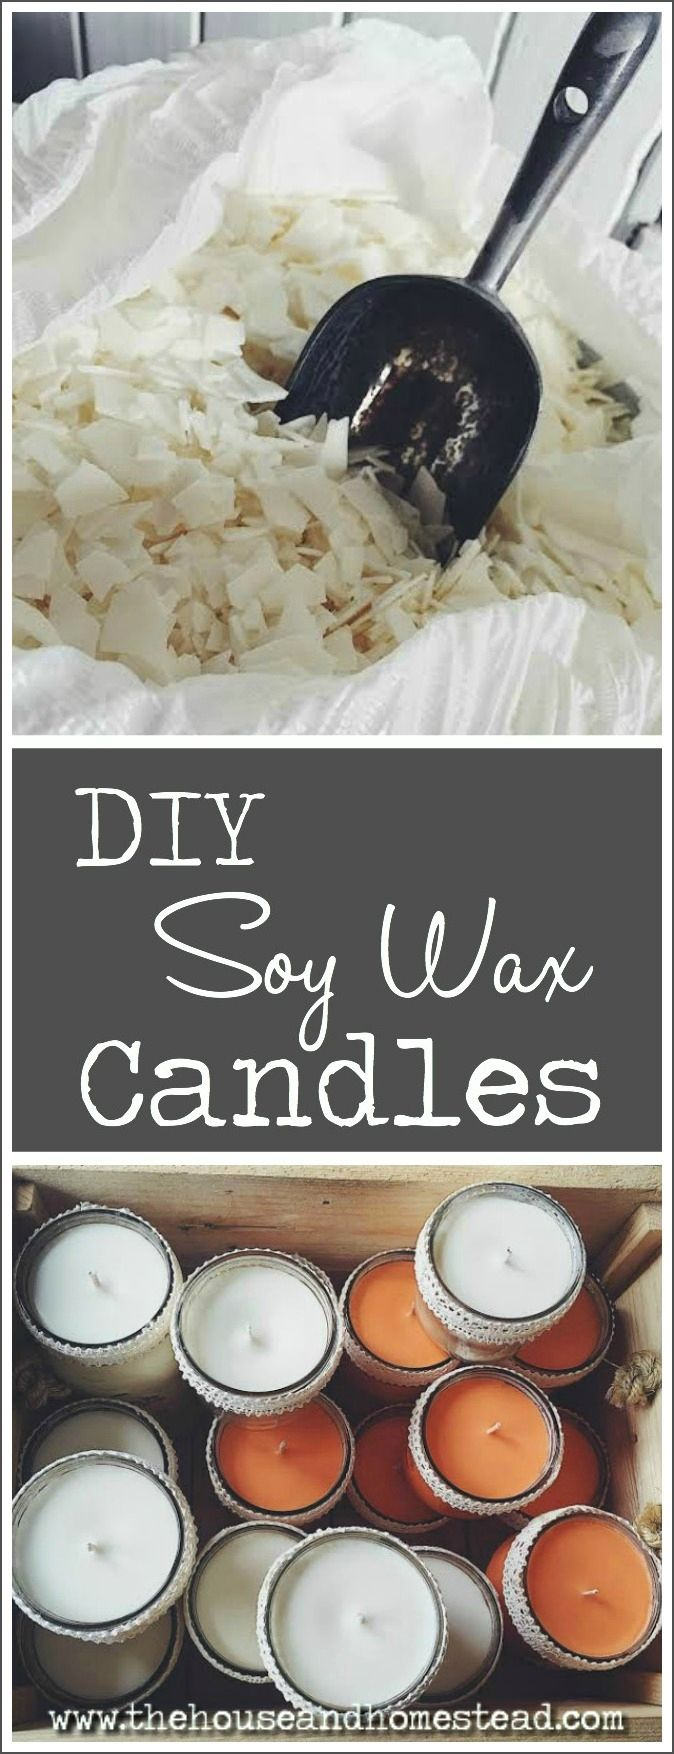 How To Make Candles Without Containers #candlemakingbusiness